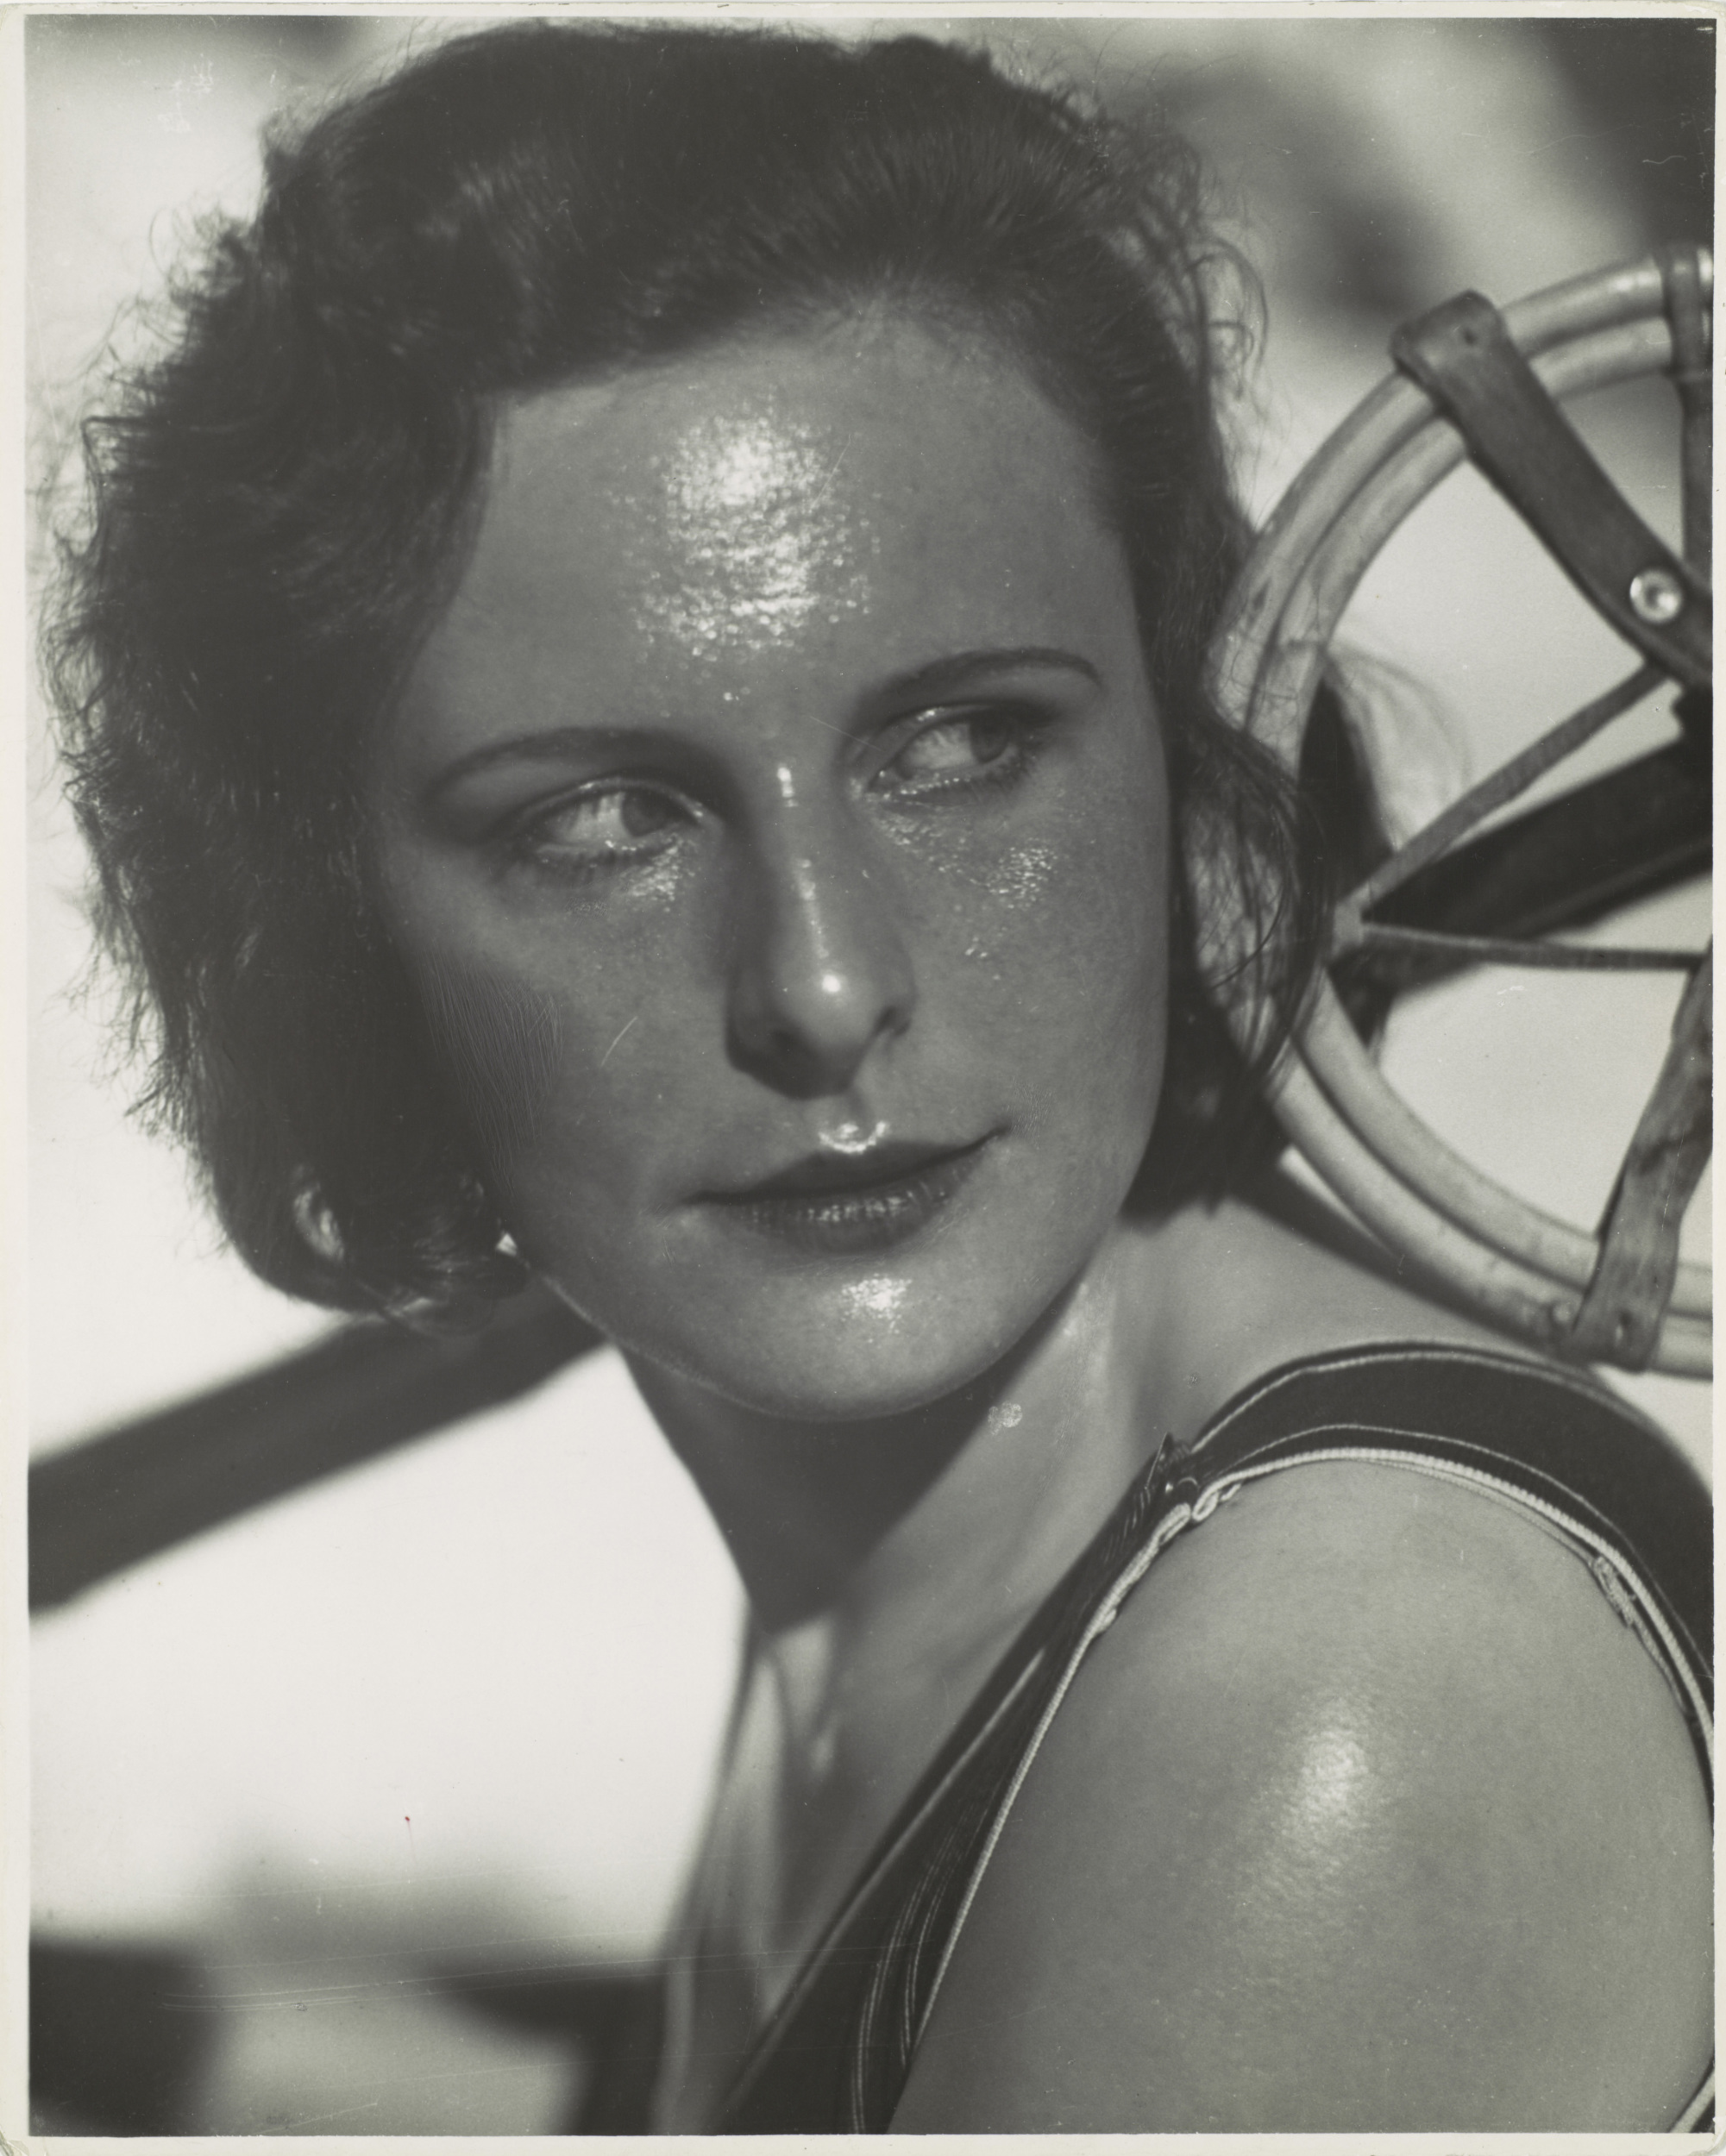 leni riefenstahl 2003leni riefenstahl africa, leni riefenstahl olympia, leni riefenstahl olympia 1936, leni riefenstahl biographie, leni riefenstahl documentary, leni riefenstahl im sudan, leni riefenstahl - the immoderation of me, leni riefenstahl bücher, leni riefenstahl works, leni riefenstahl wiki, leni riefenstahl autogramm, leni riefenstahl 100, leni riefenstahl george lucas, leni riefenstahl 2003, leni riefenstahl interview, leni riefenstahl nuba, leni riefenstahl mann, leni riefenstahl alt, leni riefenstahl africa pdf, leni riefenstahl triumph of the will